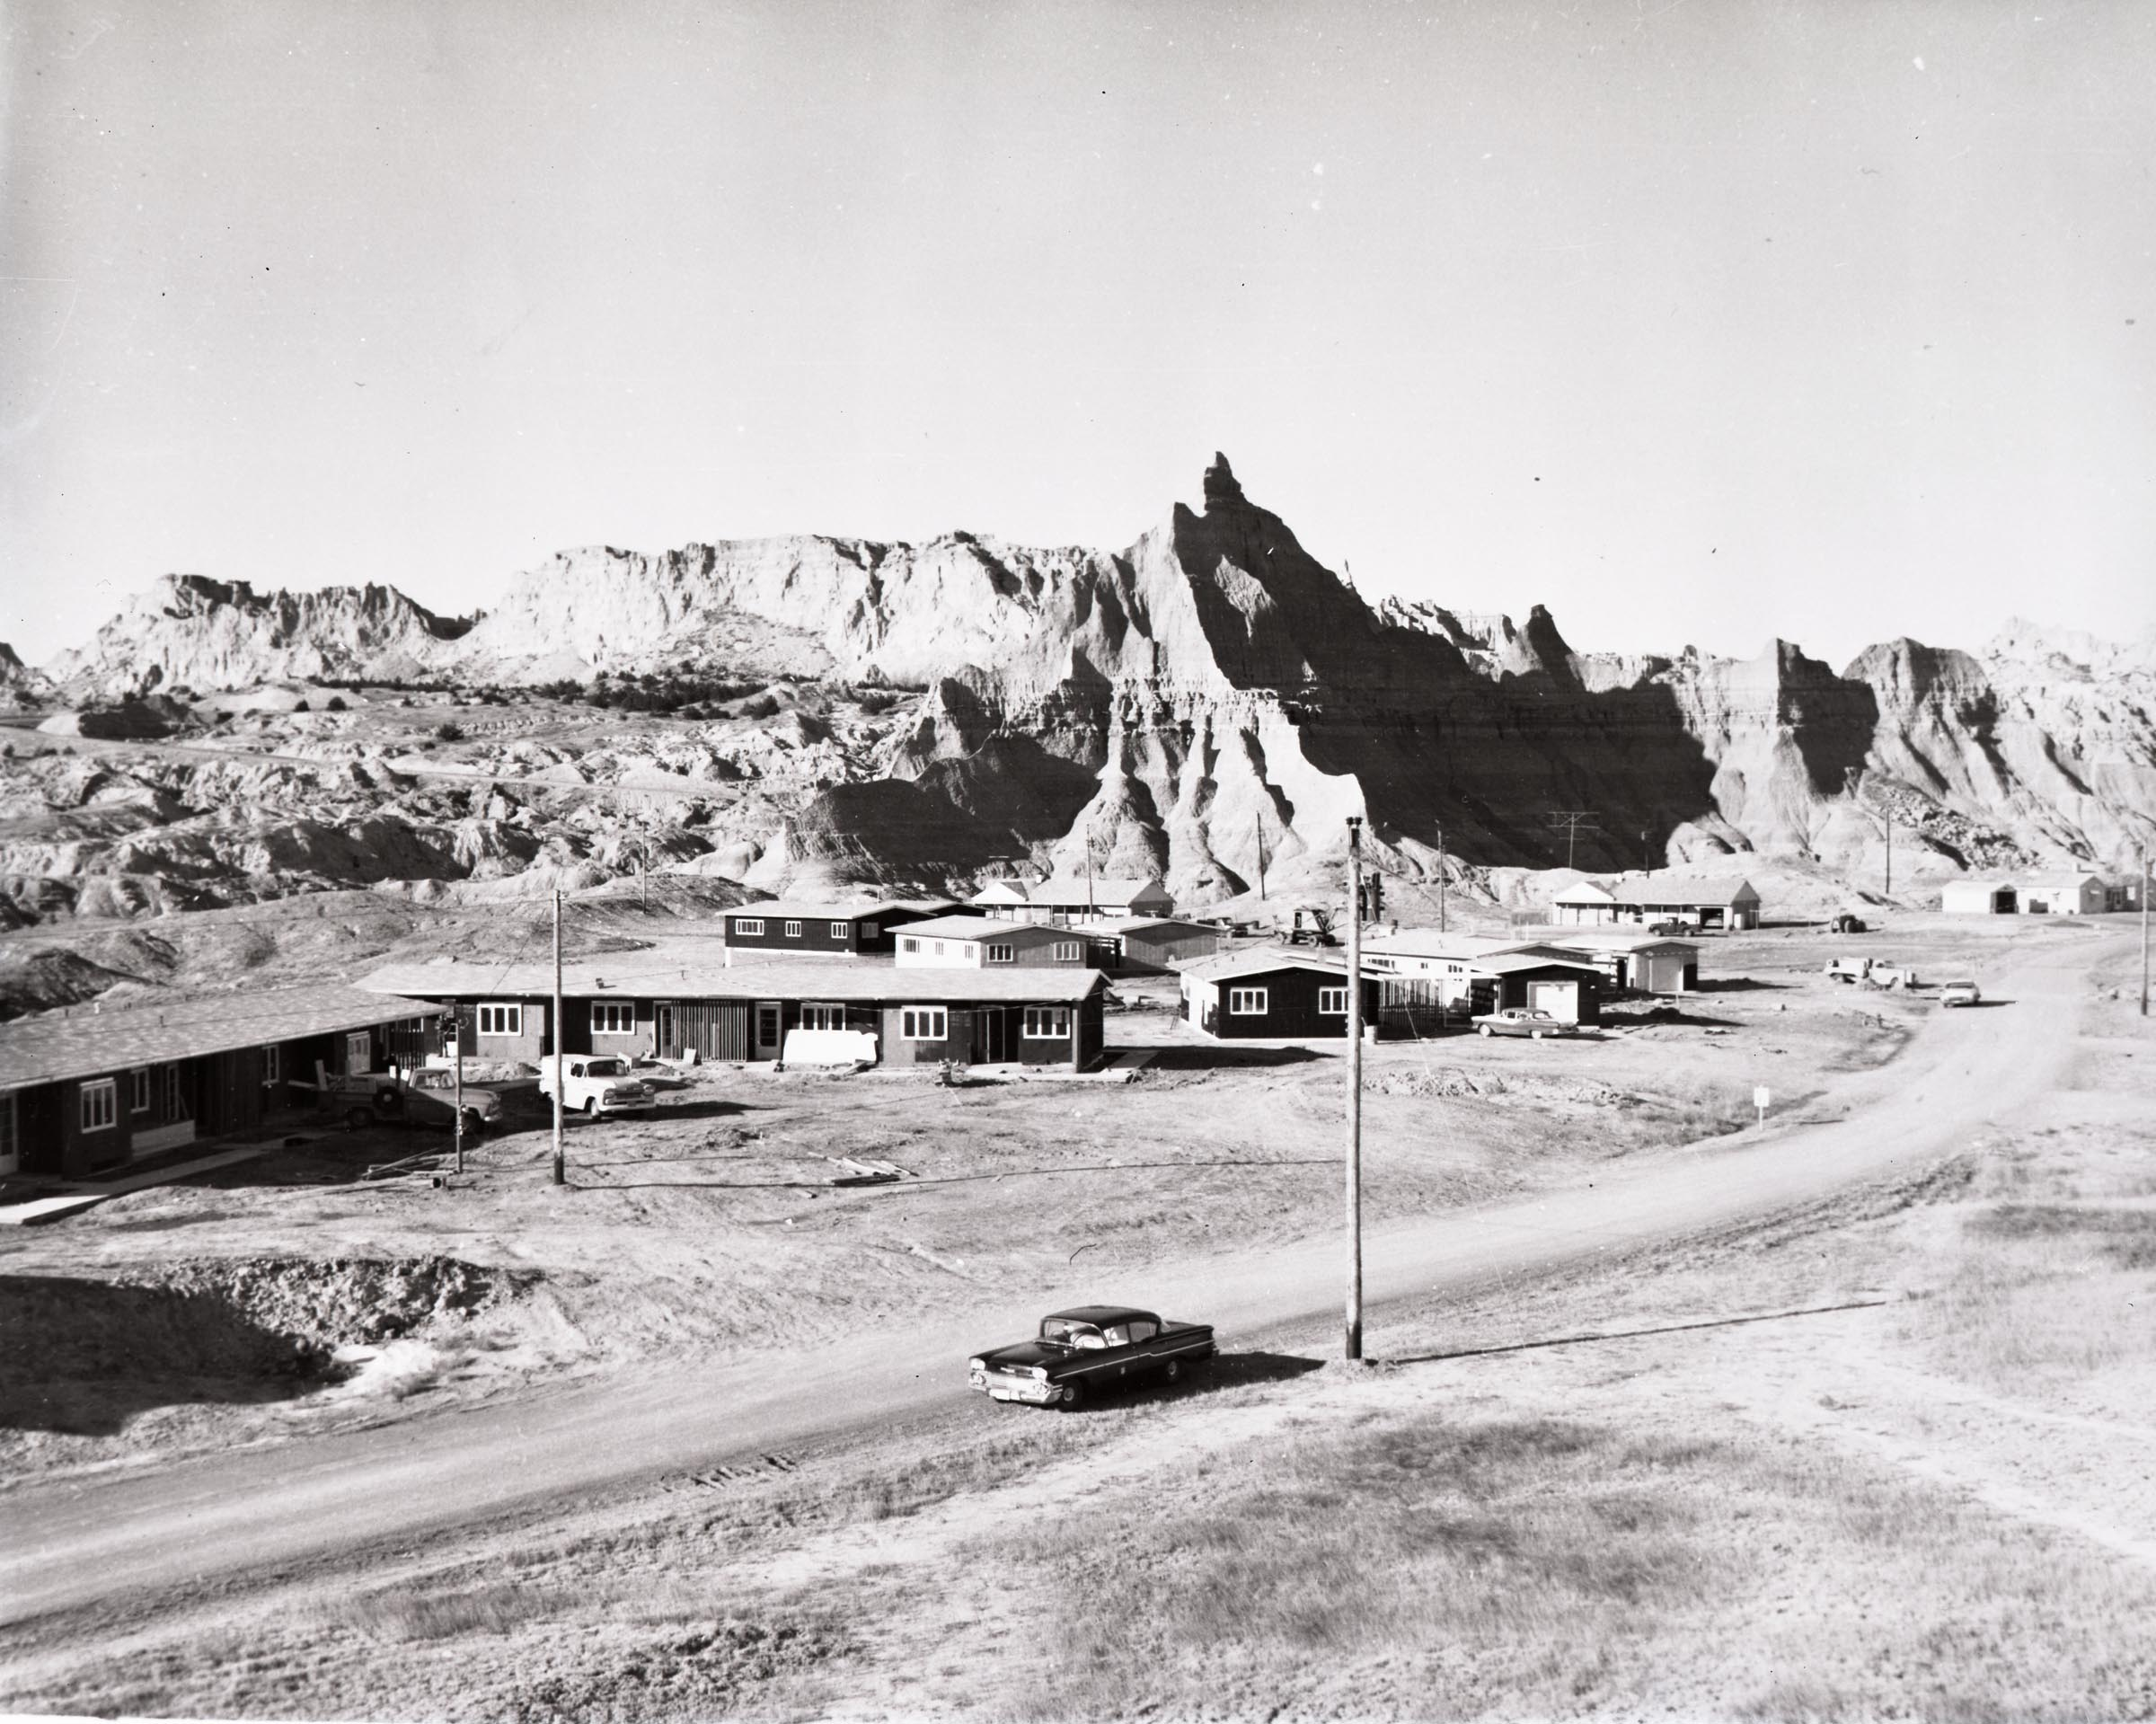 BADL2935a-Apartment buildings and new residences under construction by Cornor, Howe and Lee_1959-jpg634351086668481403.jpg